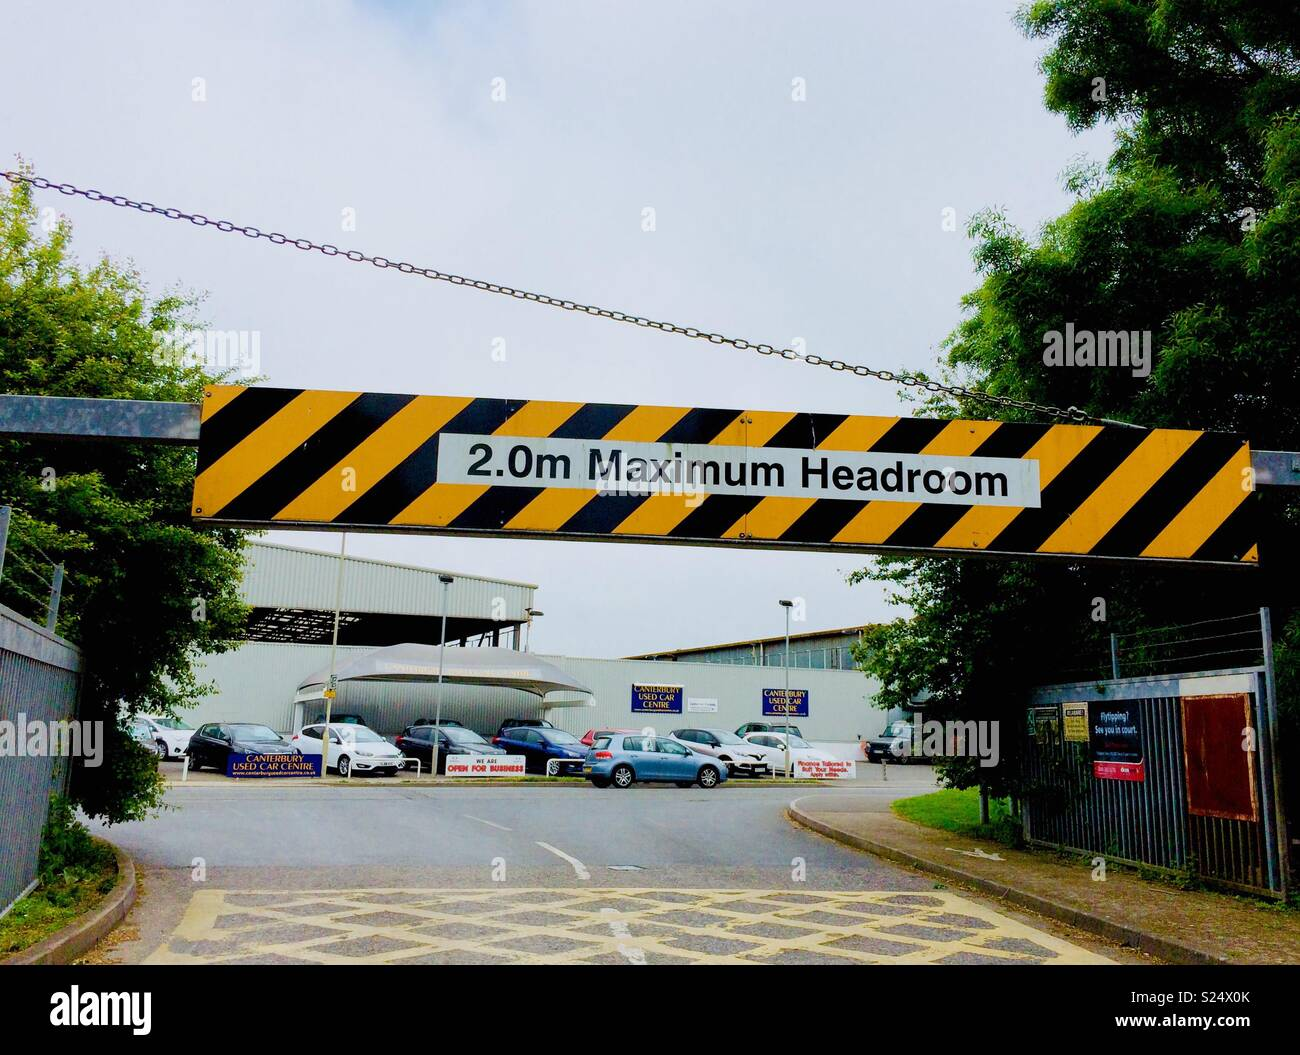 Height Restriction Barrier High Resolution Stock Photography And Images Alamy